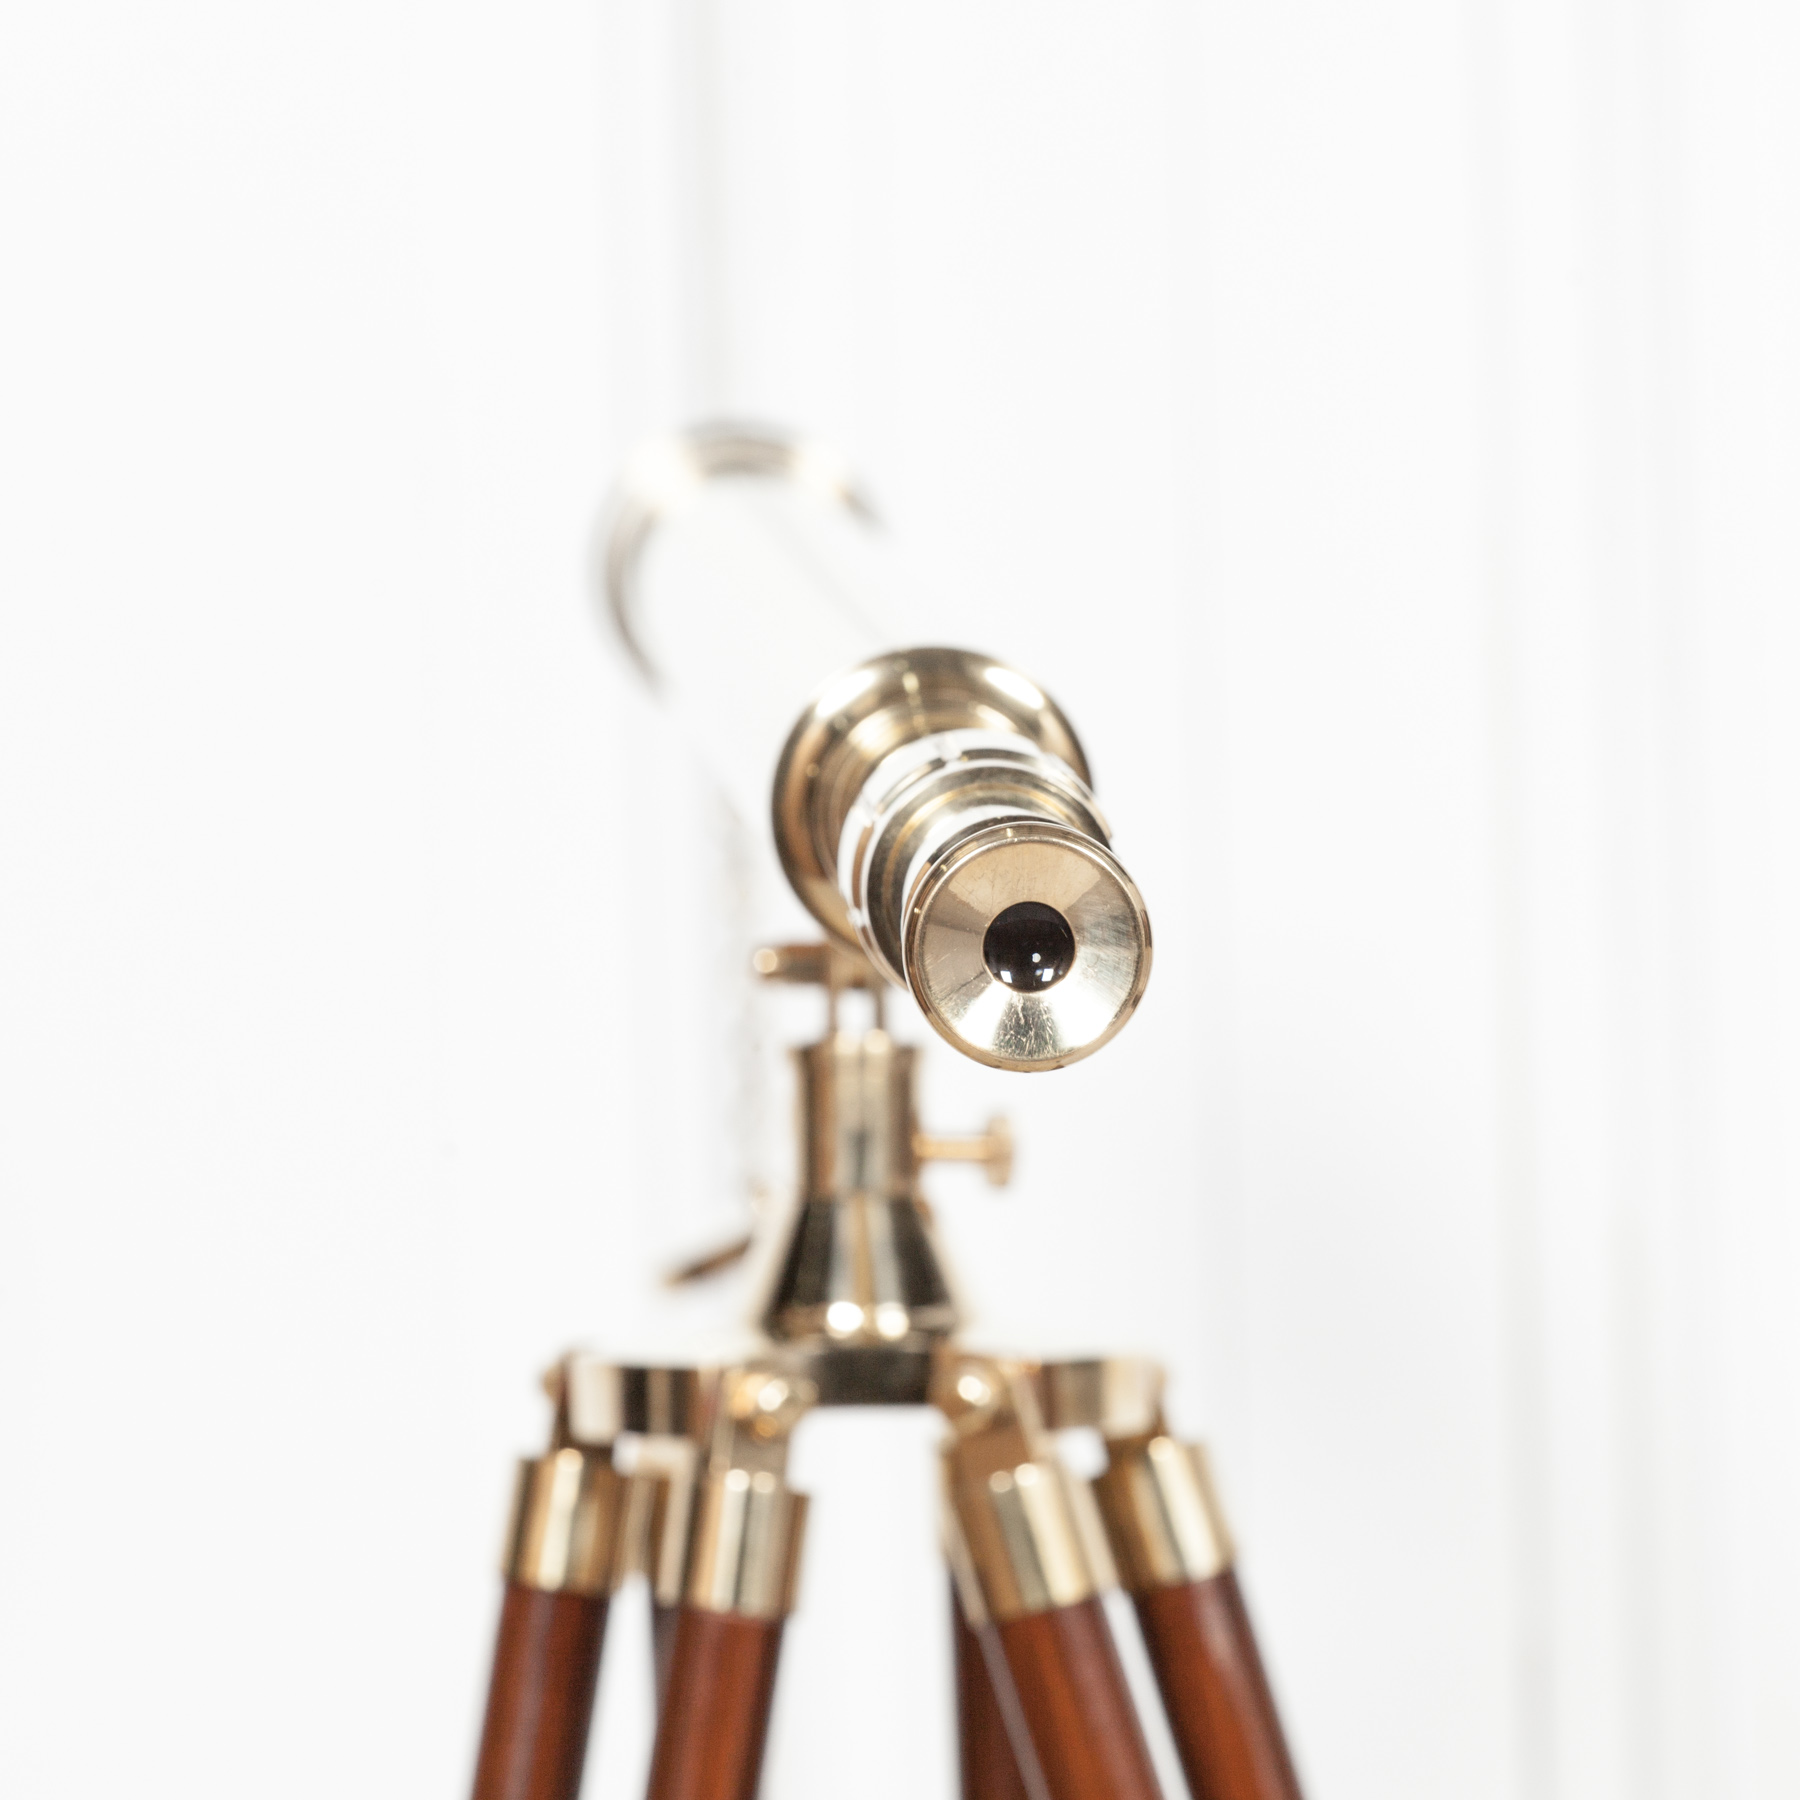 Brass Telescope on Wooden Stand